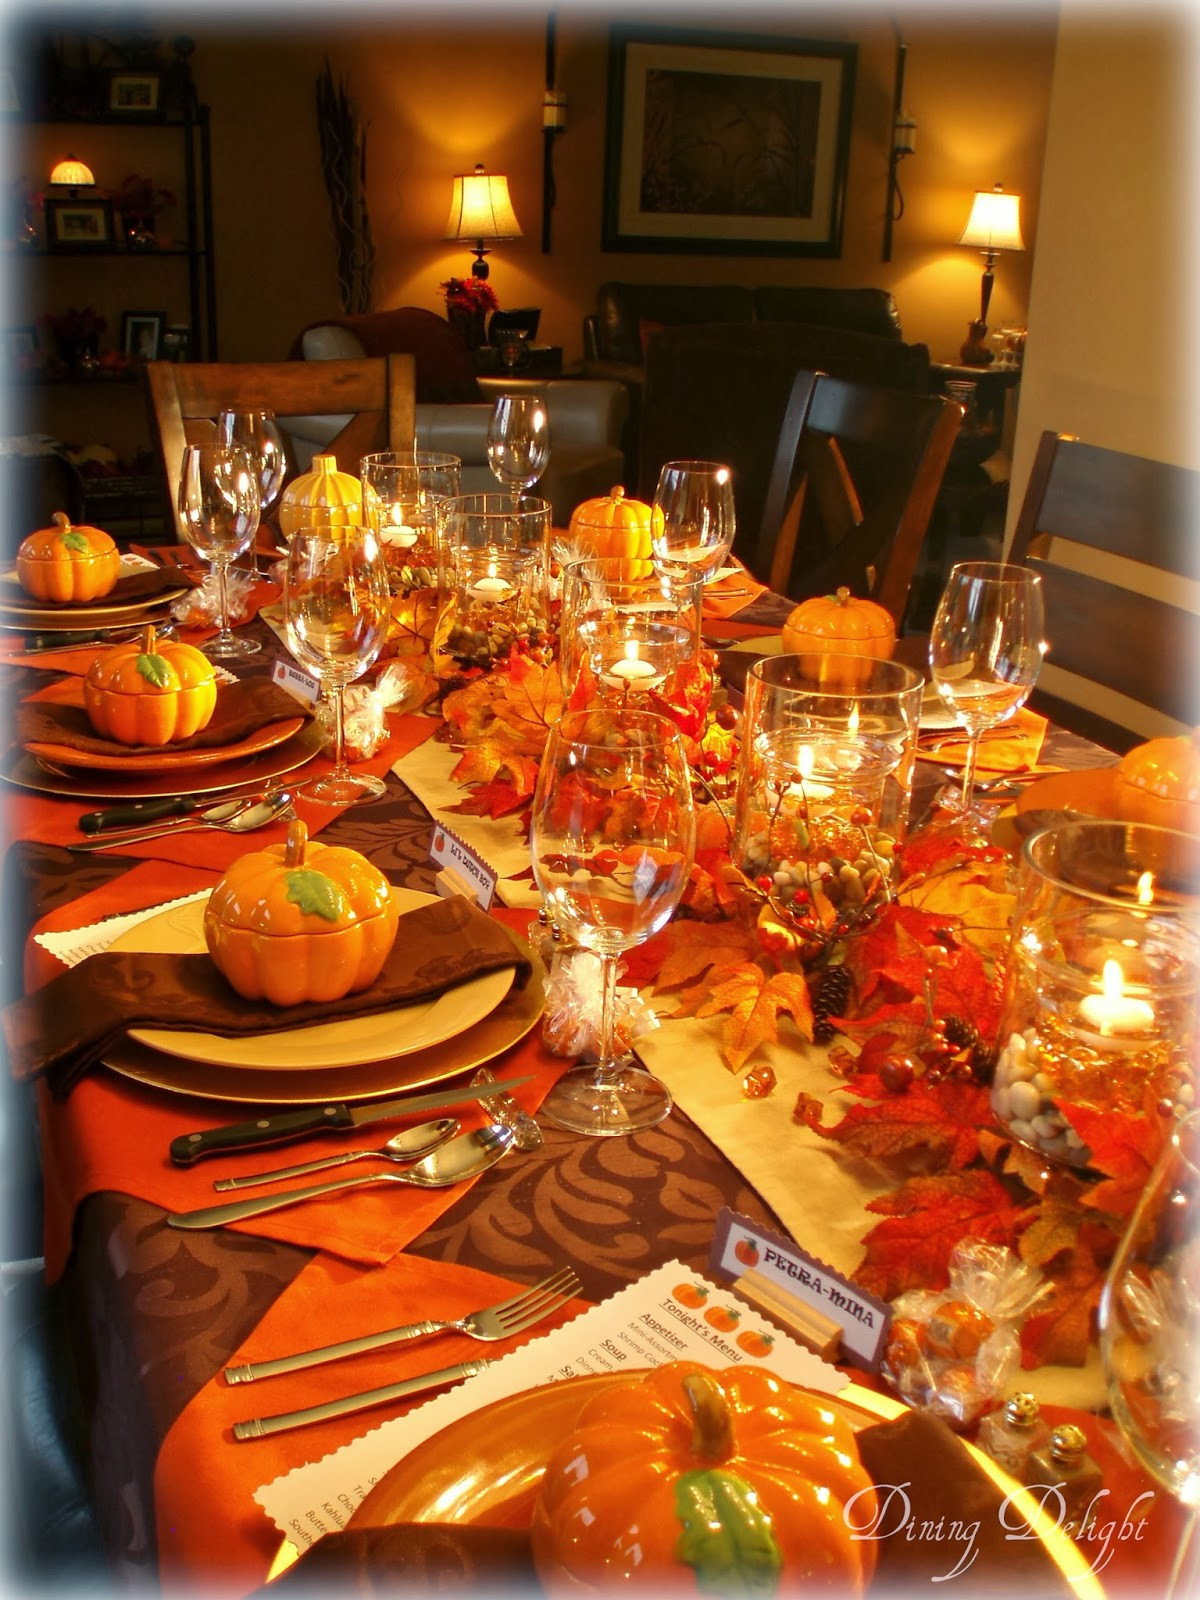 Thanksgiving Dinner Decorations  Dining Delight Fall Dinner Party for Ten